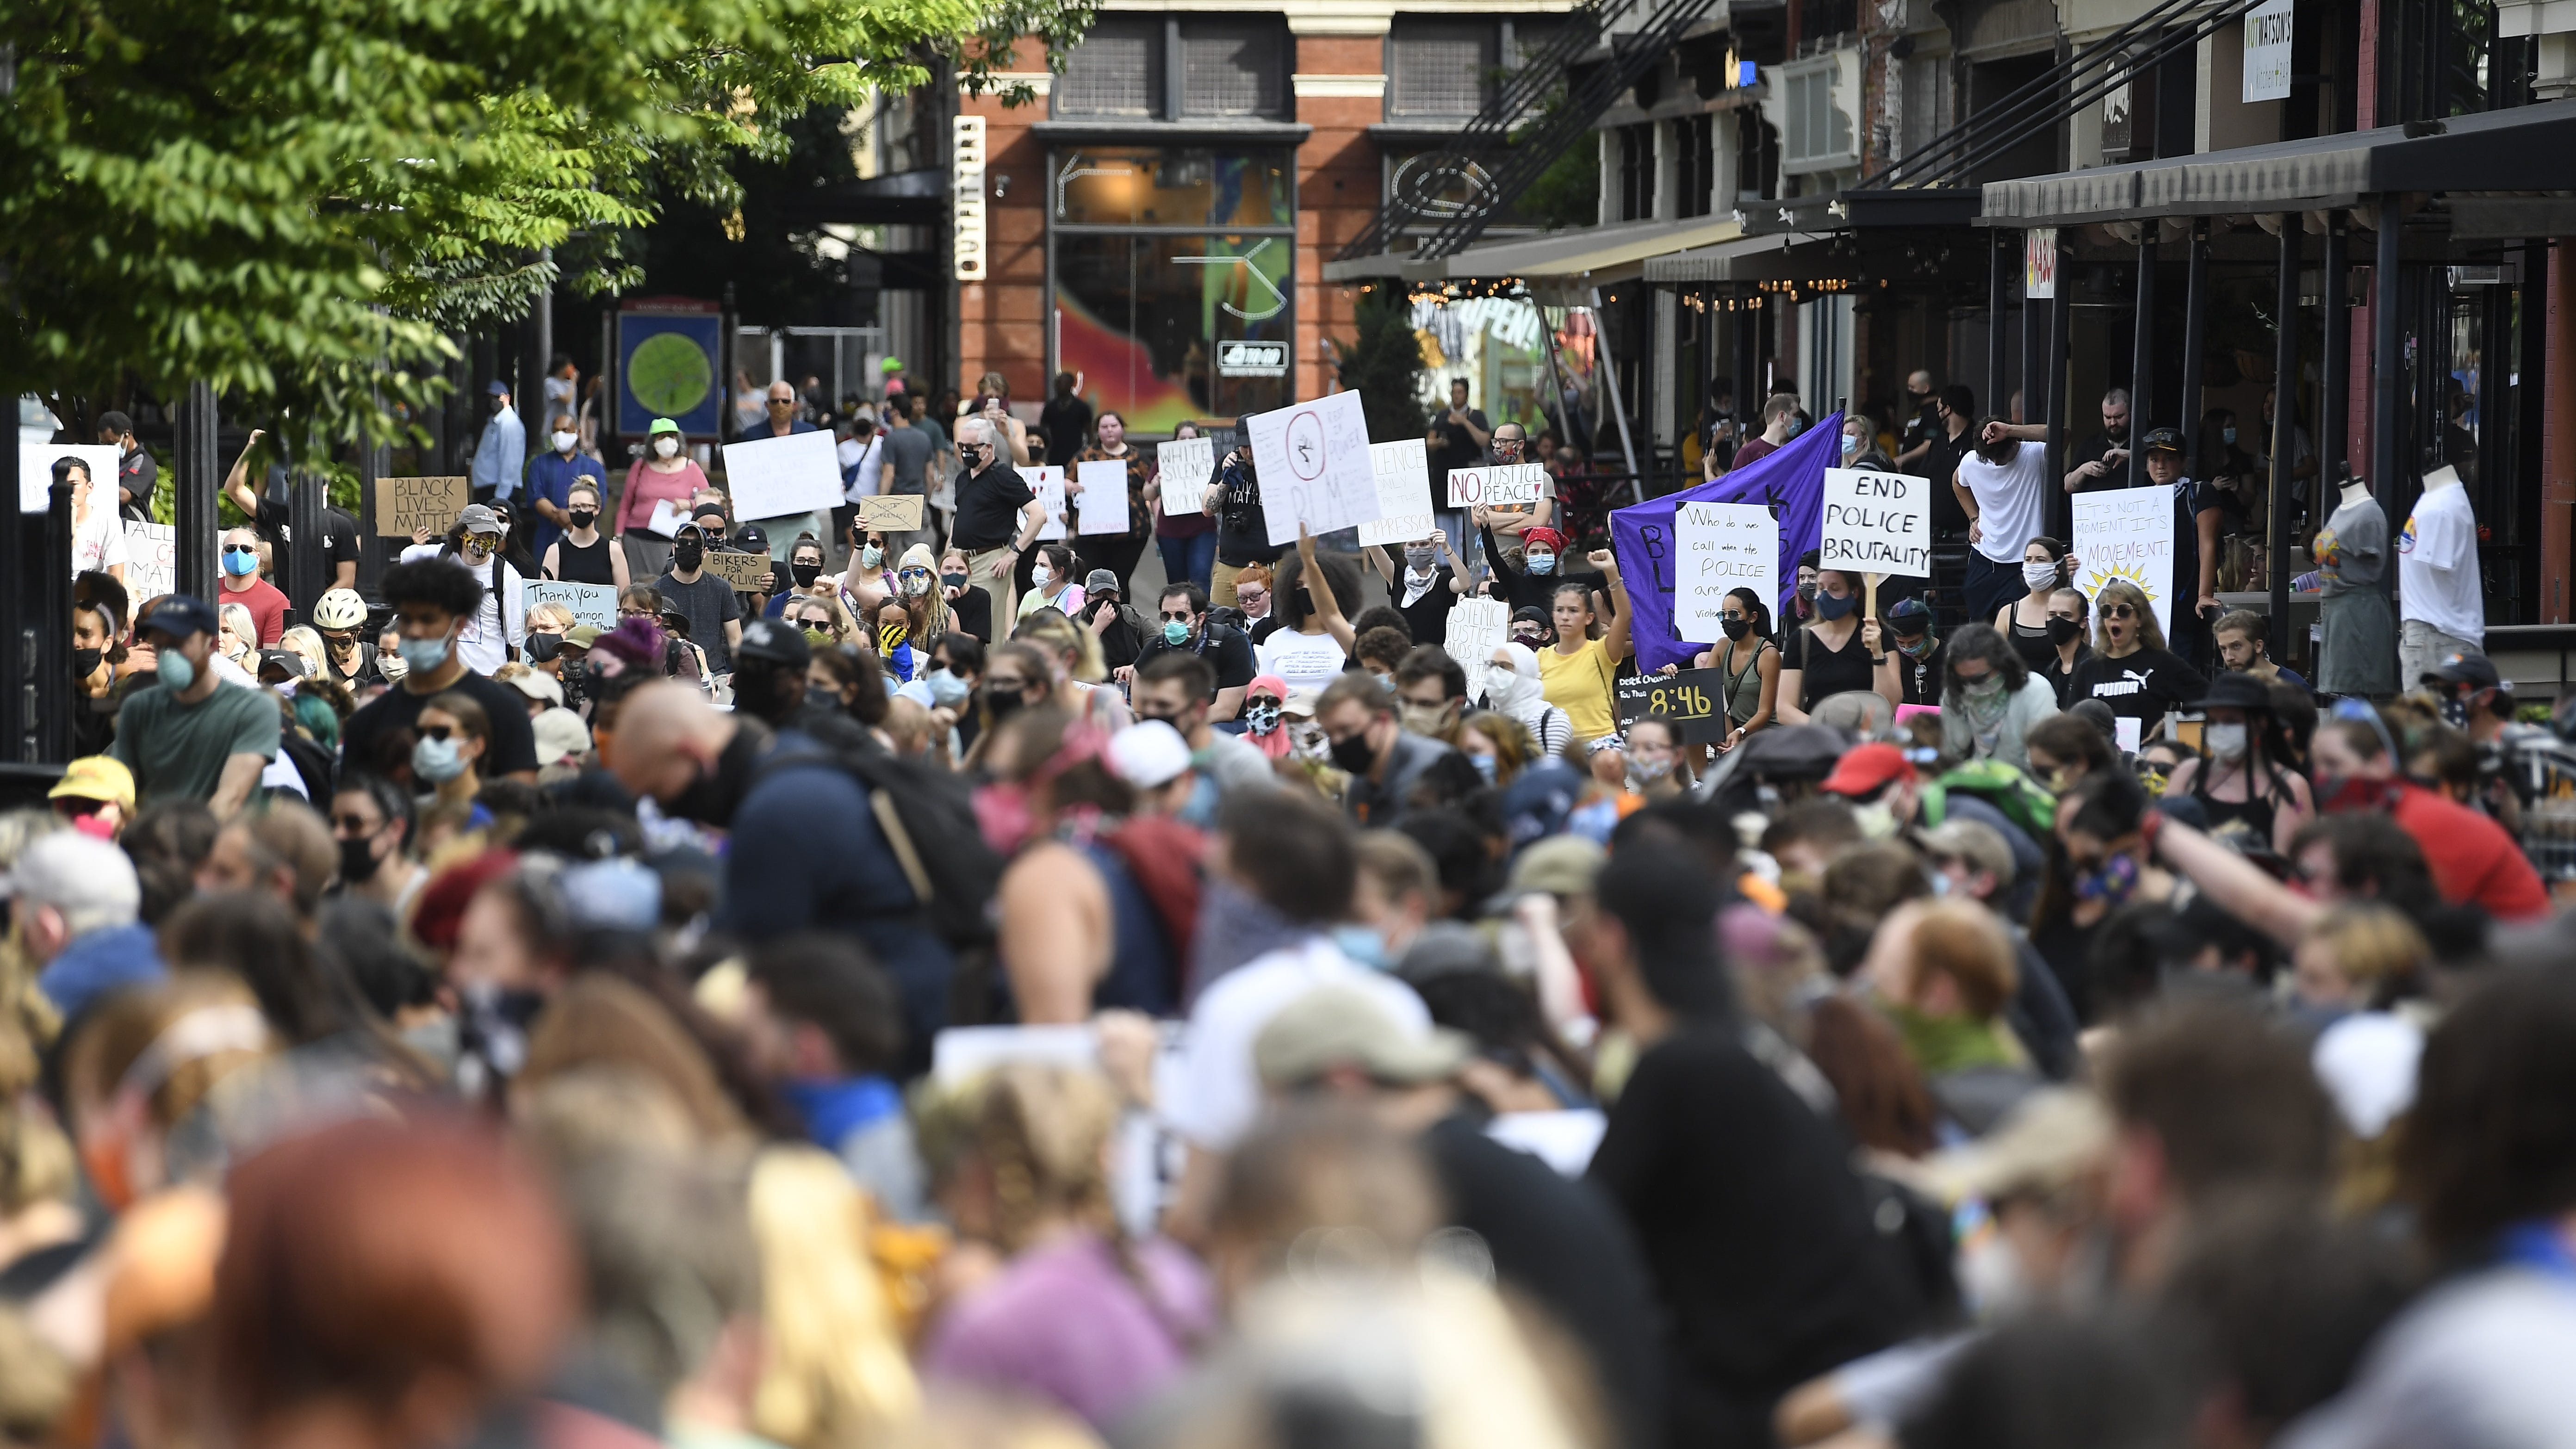 Peaceful protesters take to the streets as KPD announces a policy review